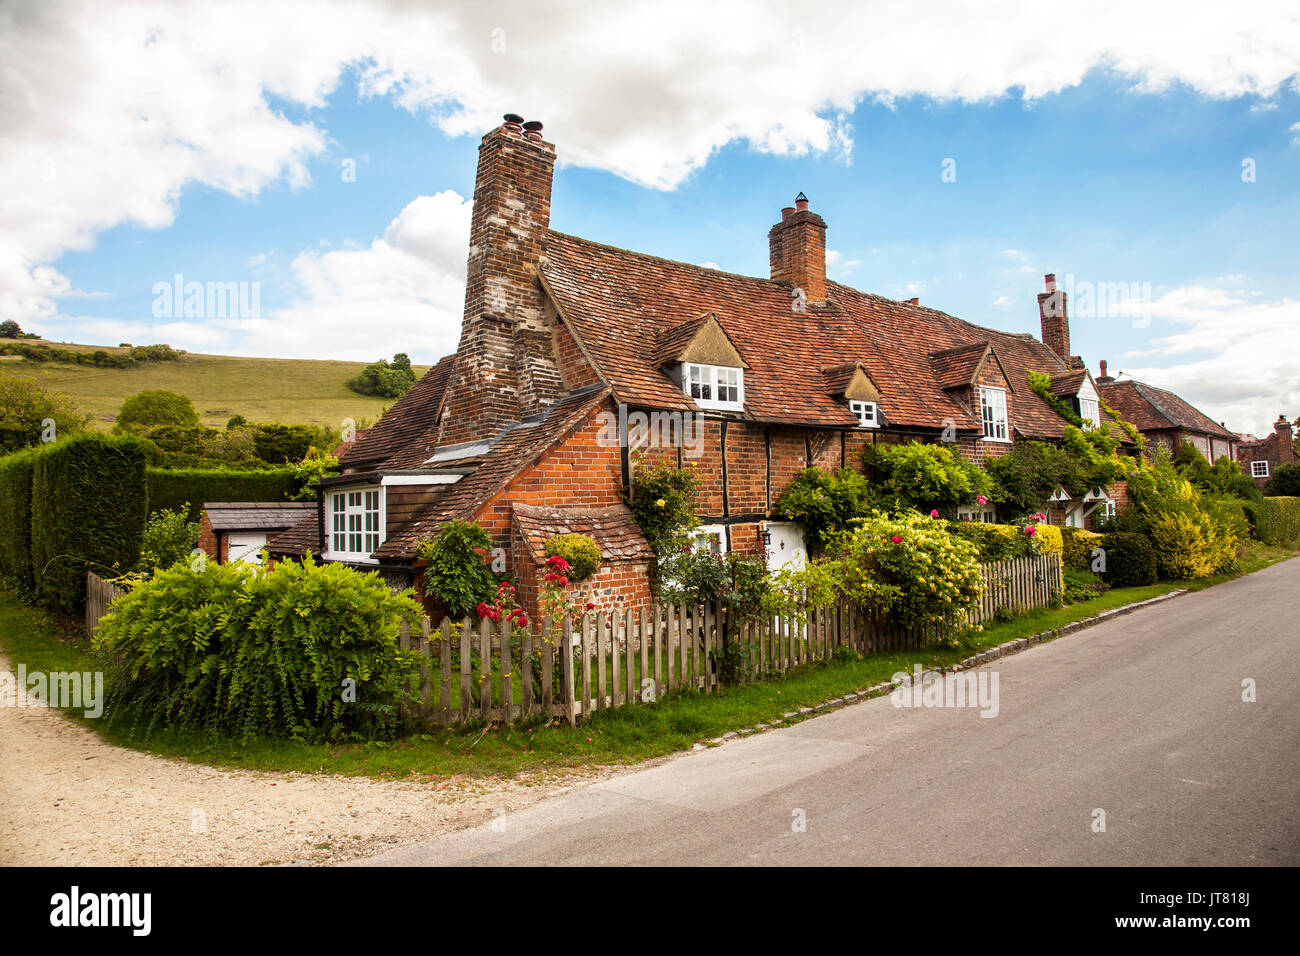 Cottages in the tranquil  rural English village of Turvill in the Chiltern Hills  Buckinghamshrie  setting  for Midsomer Murders and vicar of Dibley - Stock Image